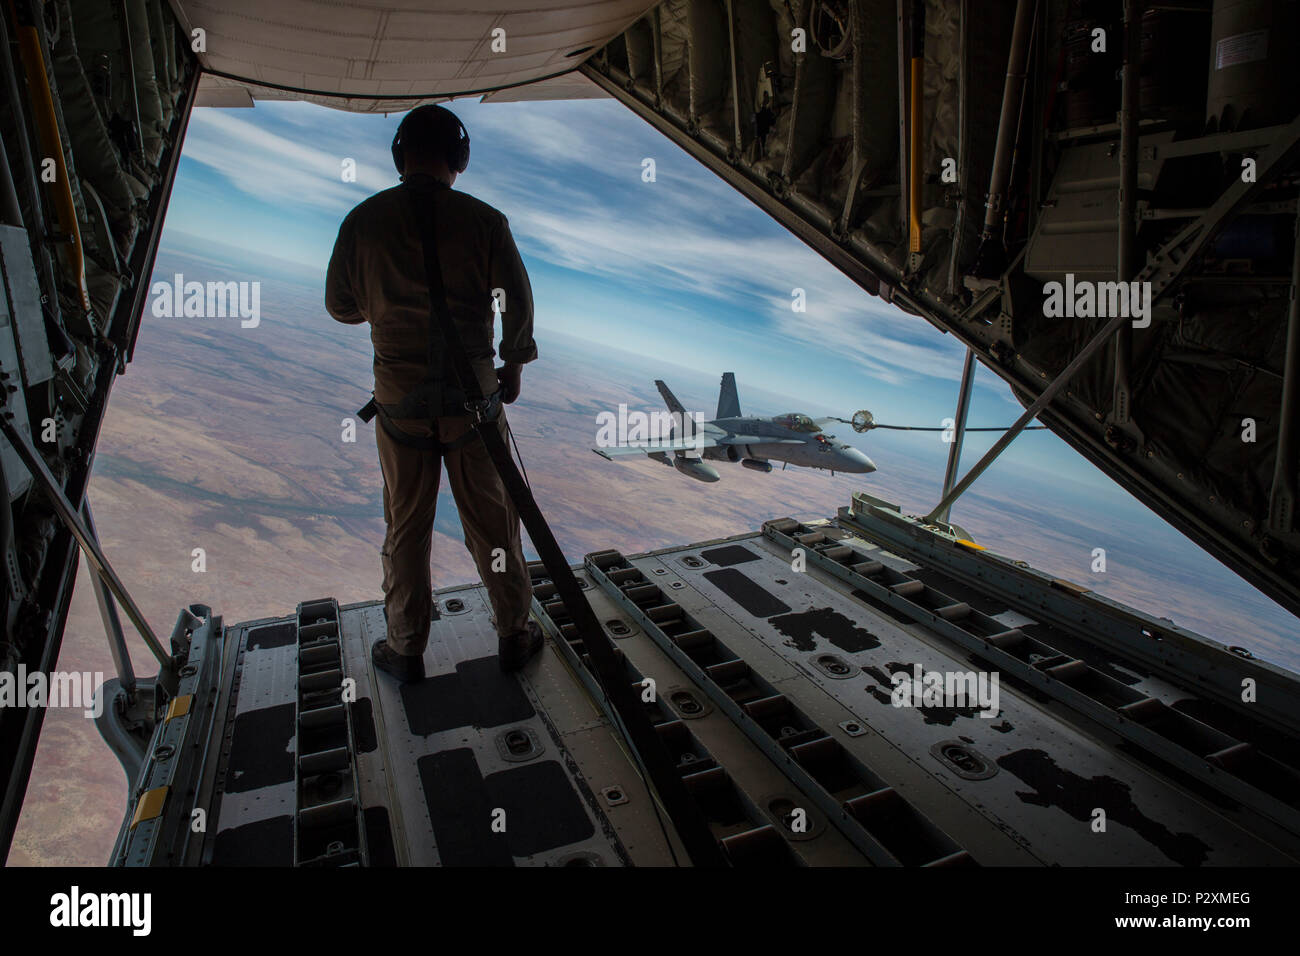 U.S. Marine Corps Cpl. Chris Lawler, a crewmaster with Marine Aerial Refueler Transport Squadron (VMGR) 152, observes an F/A-18C Hornet with Marine Fighter Attack Squadron (VMFA) 122 approach the refueling hose during Exercise Pitch Black 2016 at Royal Australian Air Force Base Tindal, Australia, Aug. 9, 2016. VMGR-152 provides aerial refueling and assault support during expeditionary, joint and combined operations like Pitch Black. This exercise is a biennial, three week, multinational, large-force training exercise hosted by RAAF Tindal. (U.S. Marine Corps photo by Cpl. Nicole Zurbrugg) - Stock Image